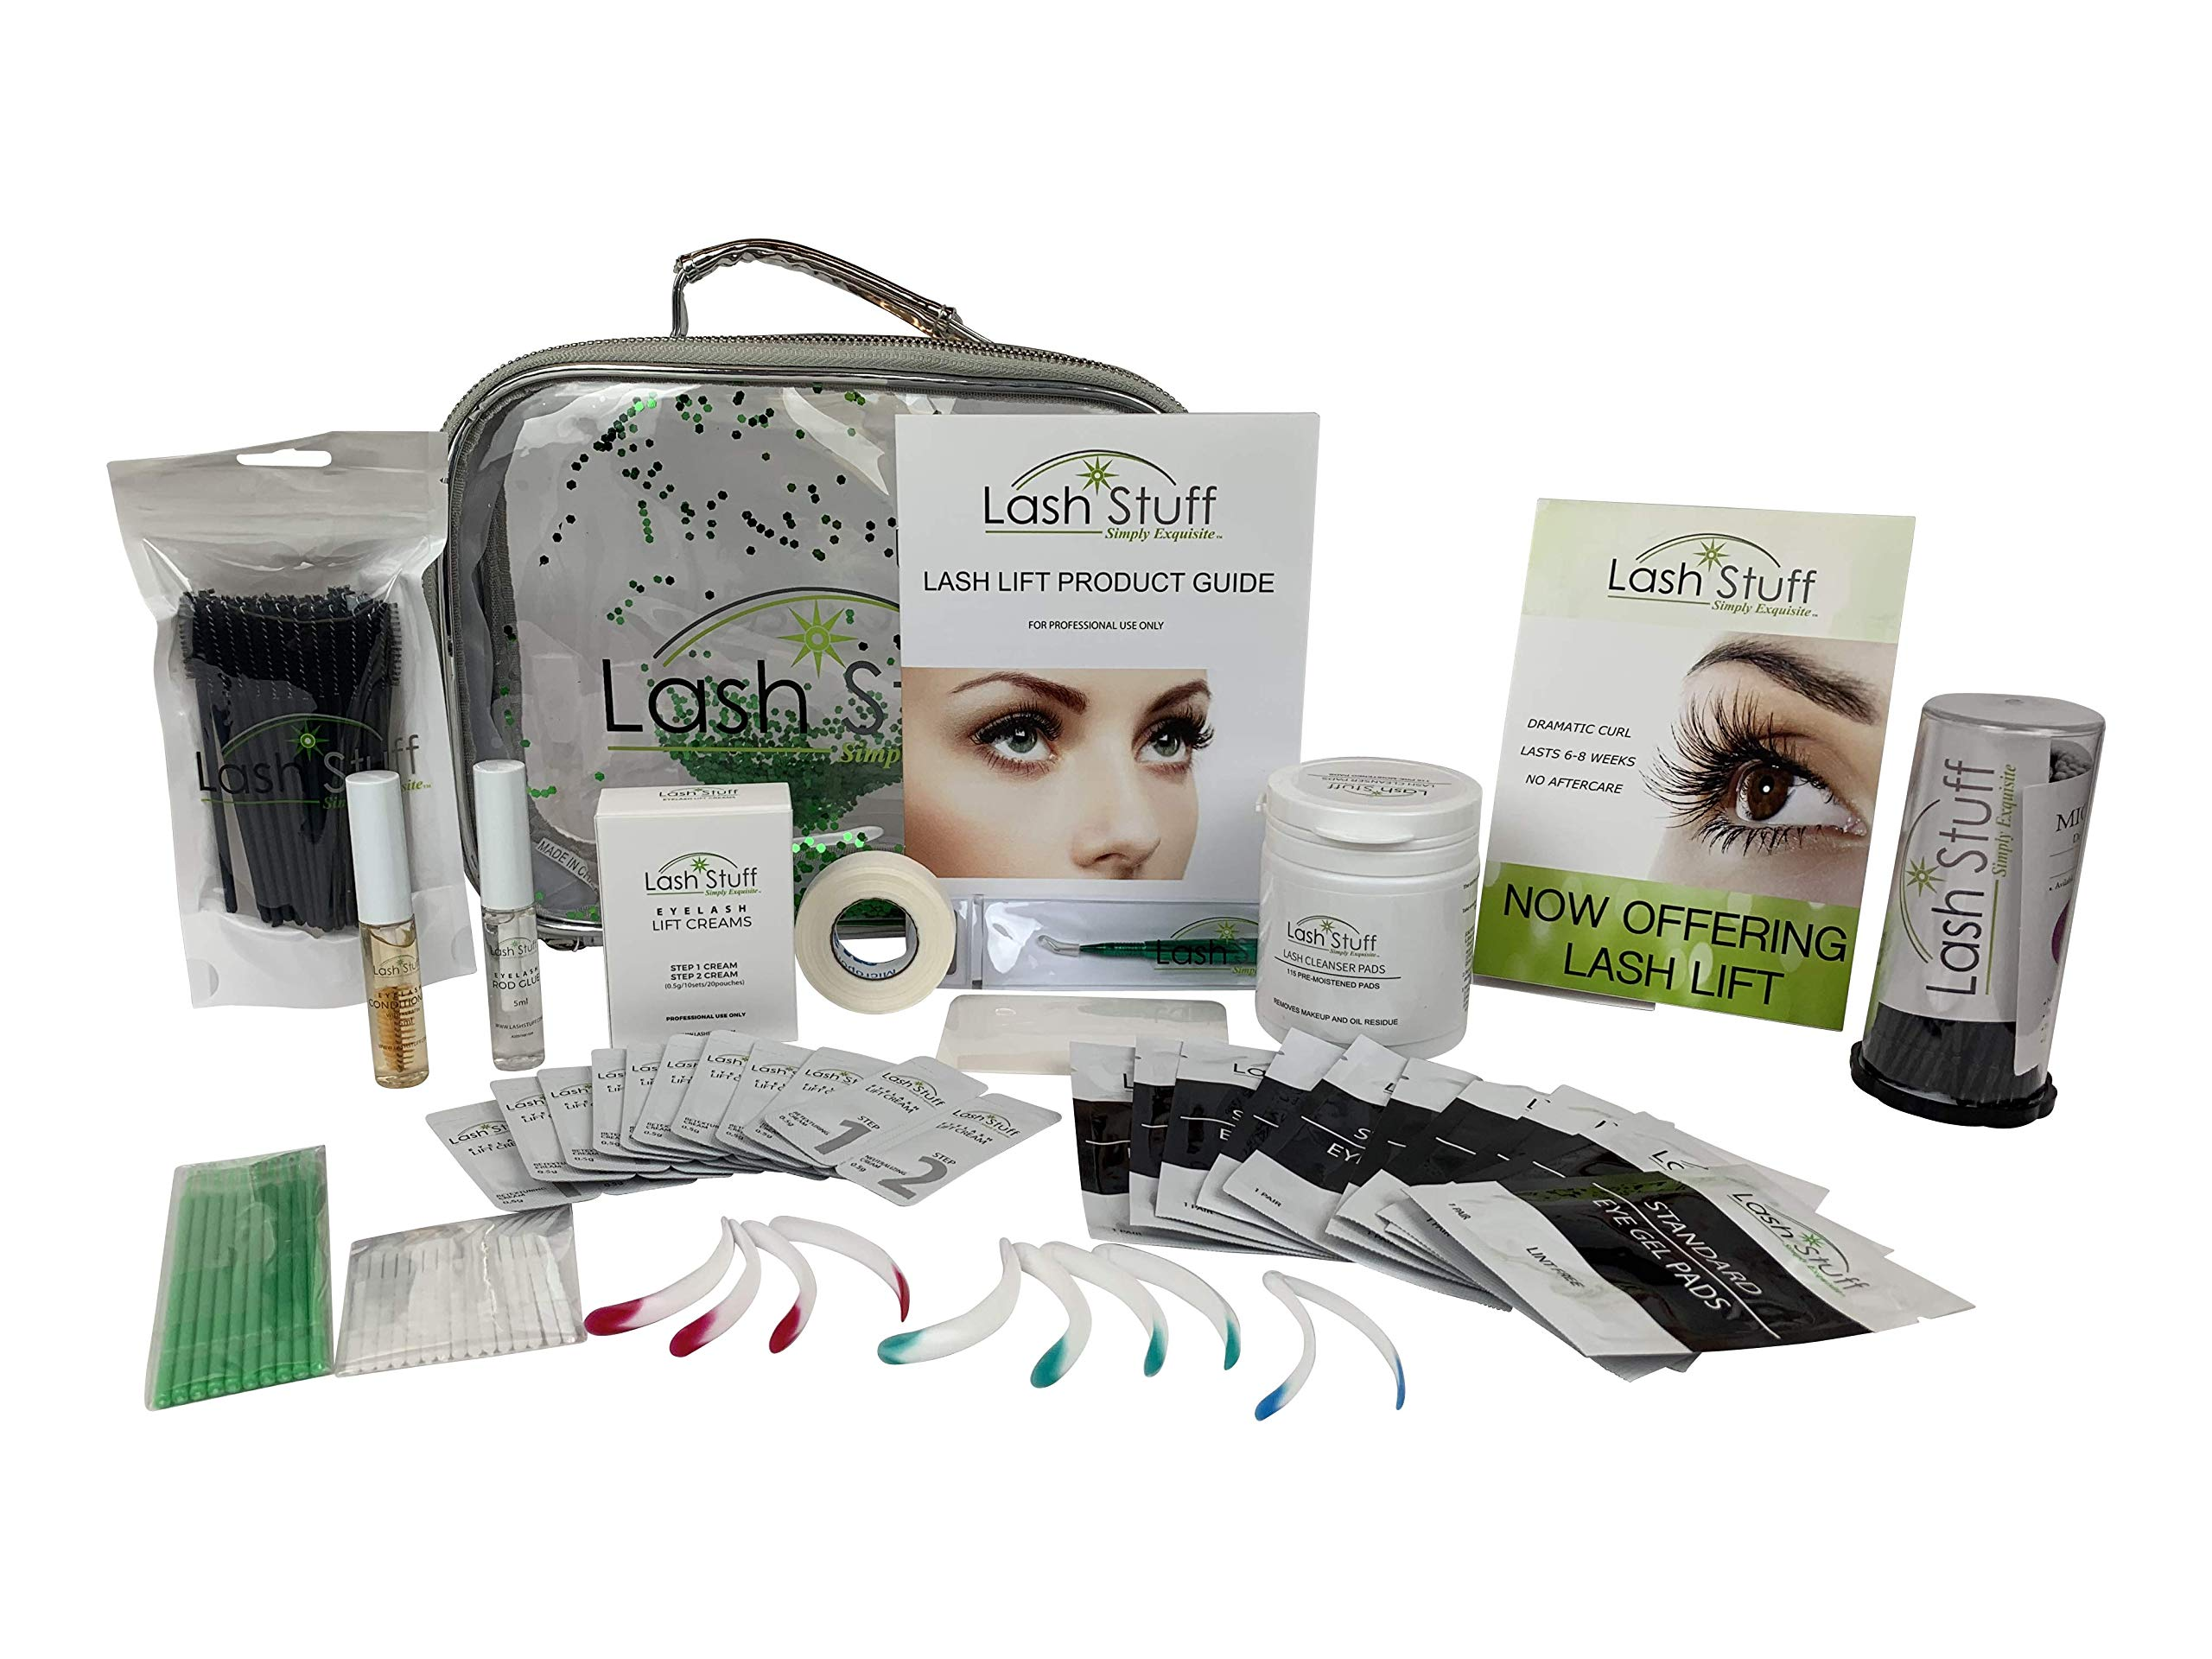 Lash Lift Kit with Keratin by Lash Stuff Simply Exquisite